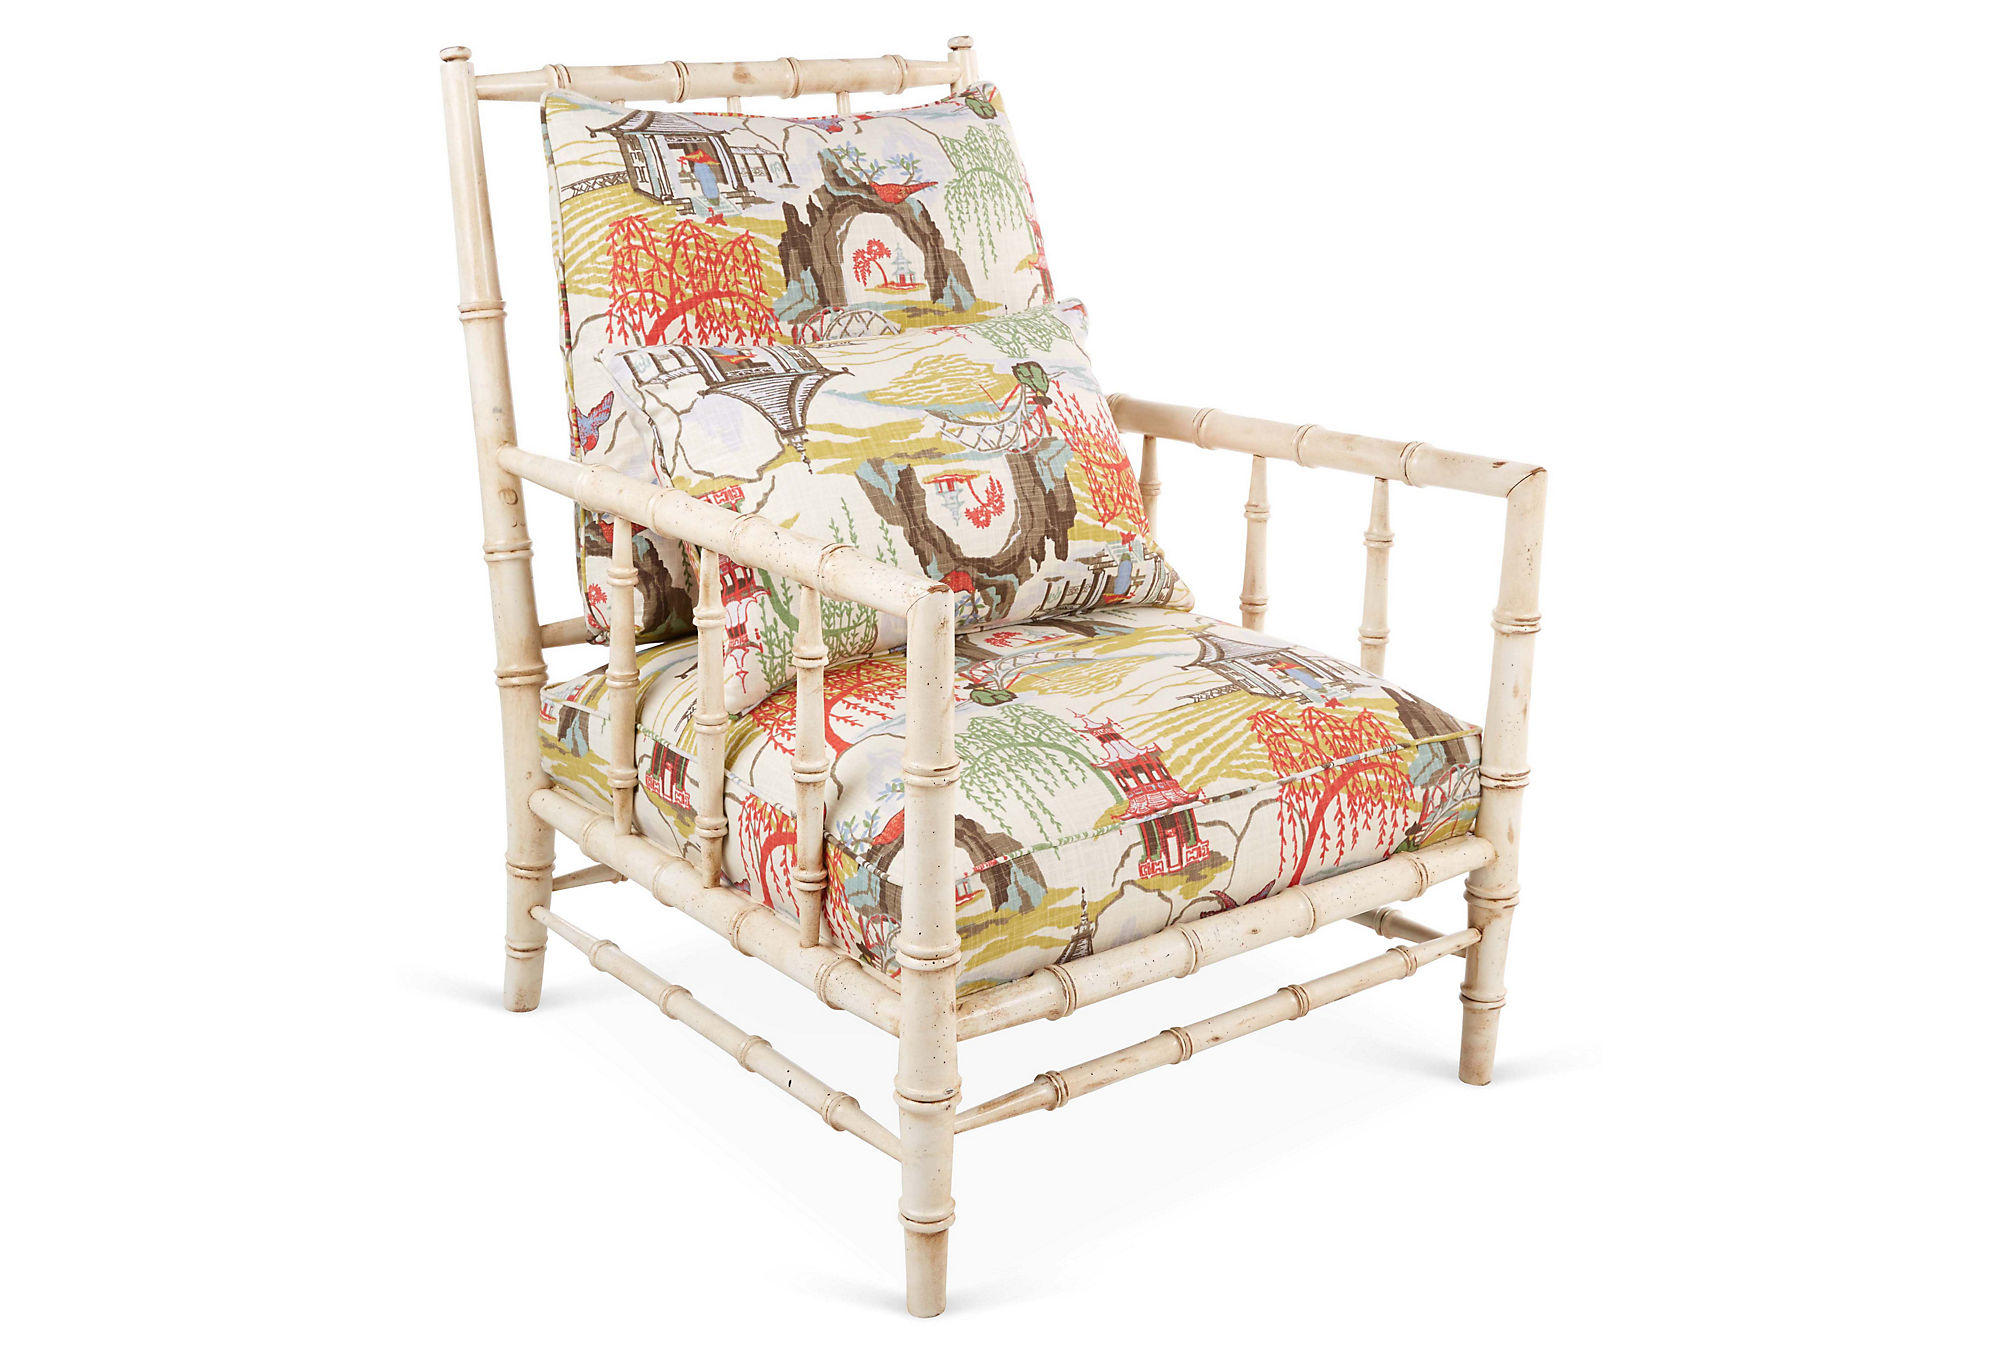 Brissac Chair Neo Toile from One Kings Lane Summer Decor